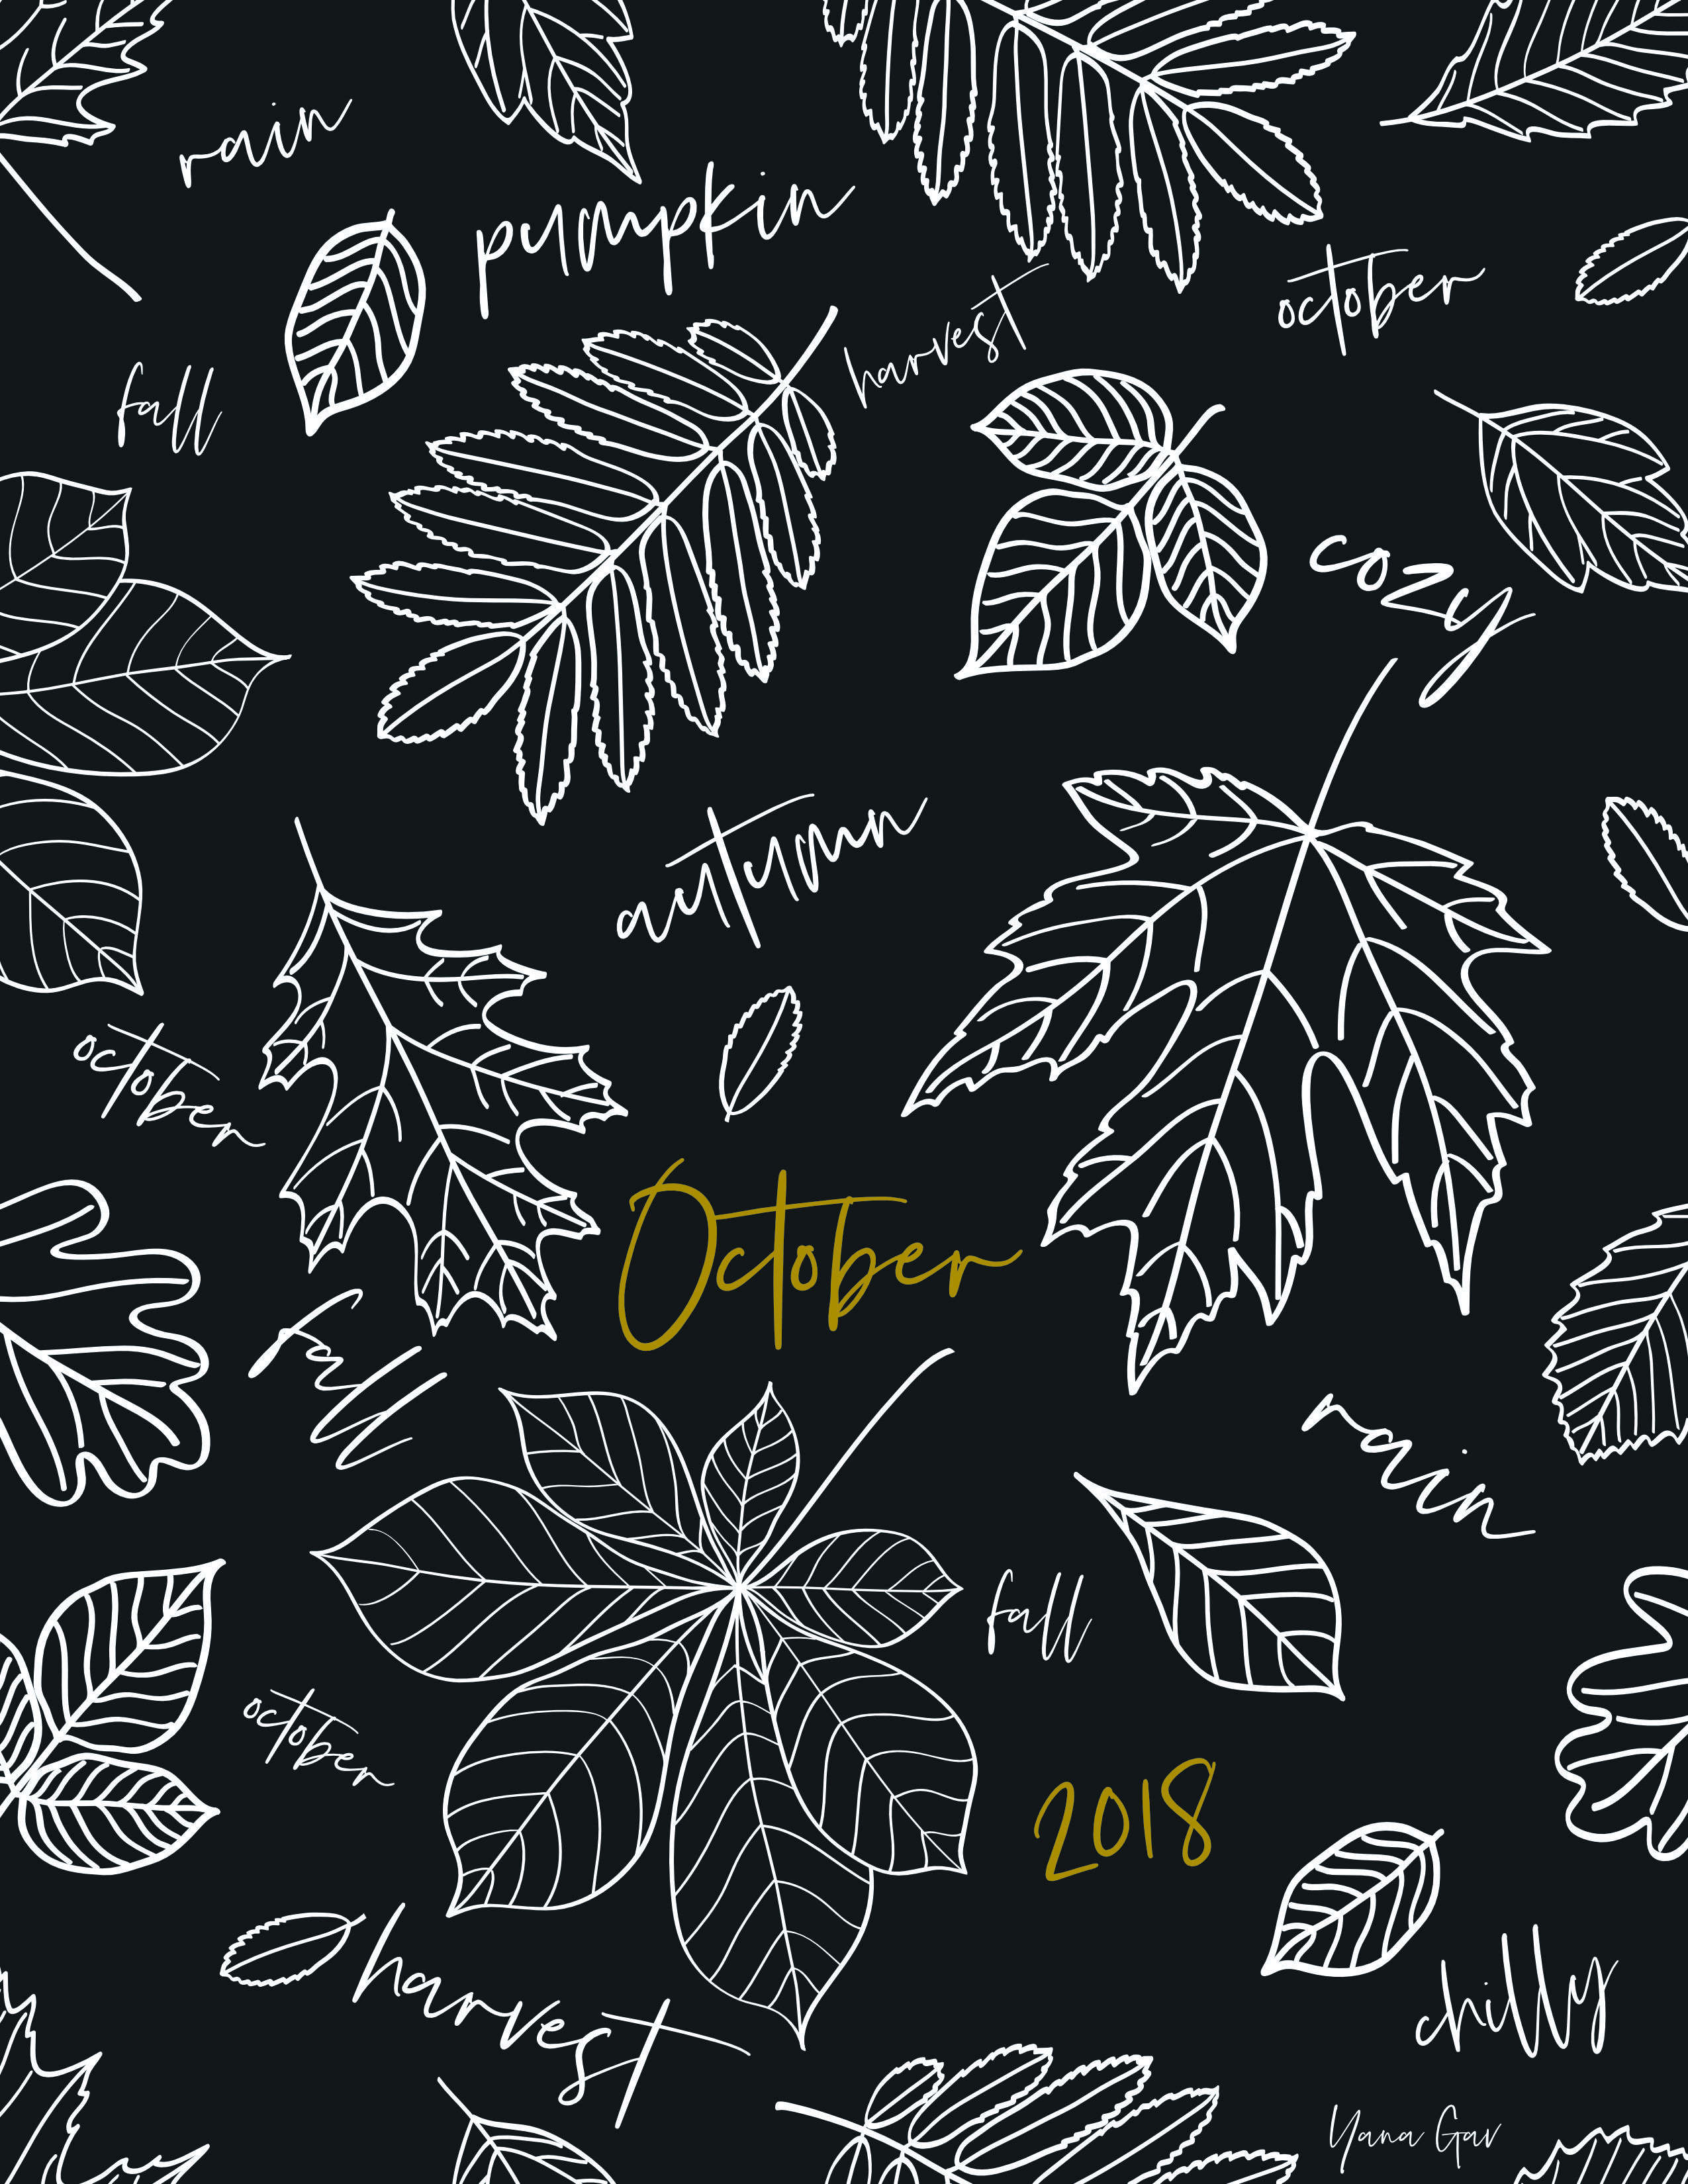 printable, 2018, fall, october, wallpaper, iphone wallpaper, neutral, quote, autumn, thanksgiving #octoberwallpaperiphone printable, 2018, fall, october, wallpaper, iphone wallpaper, neutral, quote, autumn, thanksgiving #octoberwallpaperiphone